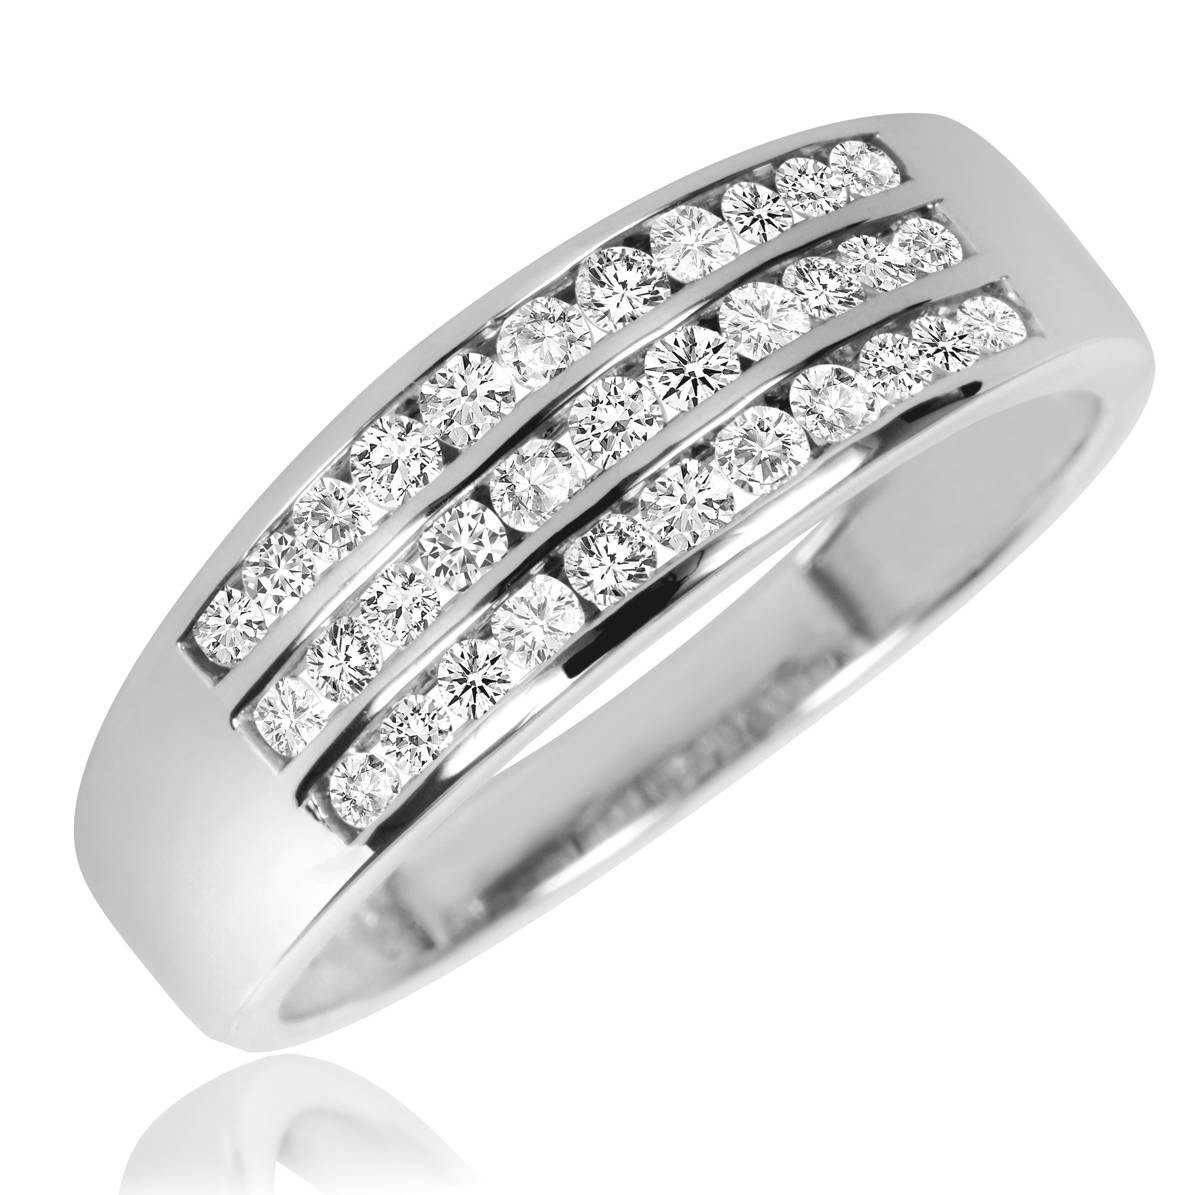 2/3 Carat T.w. Diamond Men's Wedding Band 10K White Gold Intended For Mens White Gold Wedding Bands With Diamonds (Gallery 7 of 15)